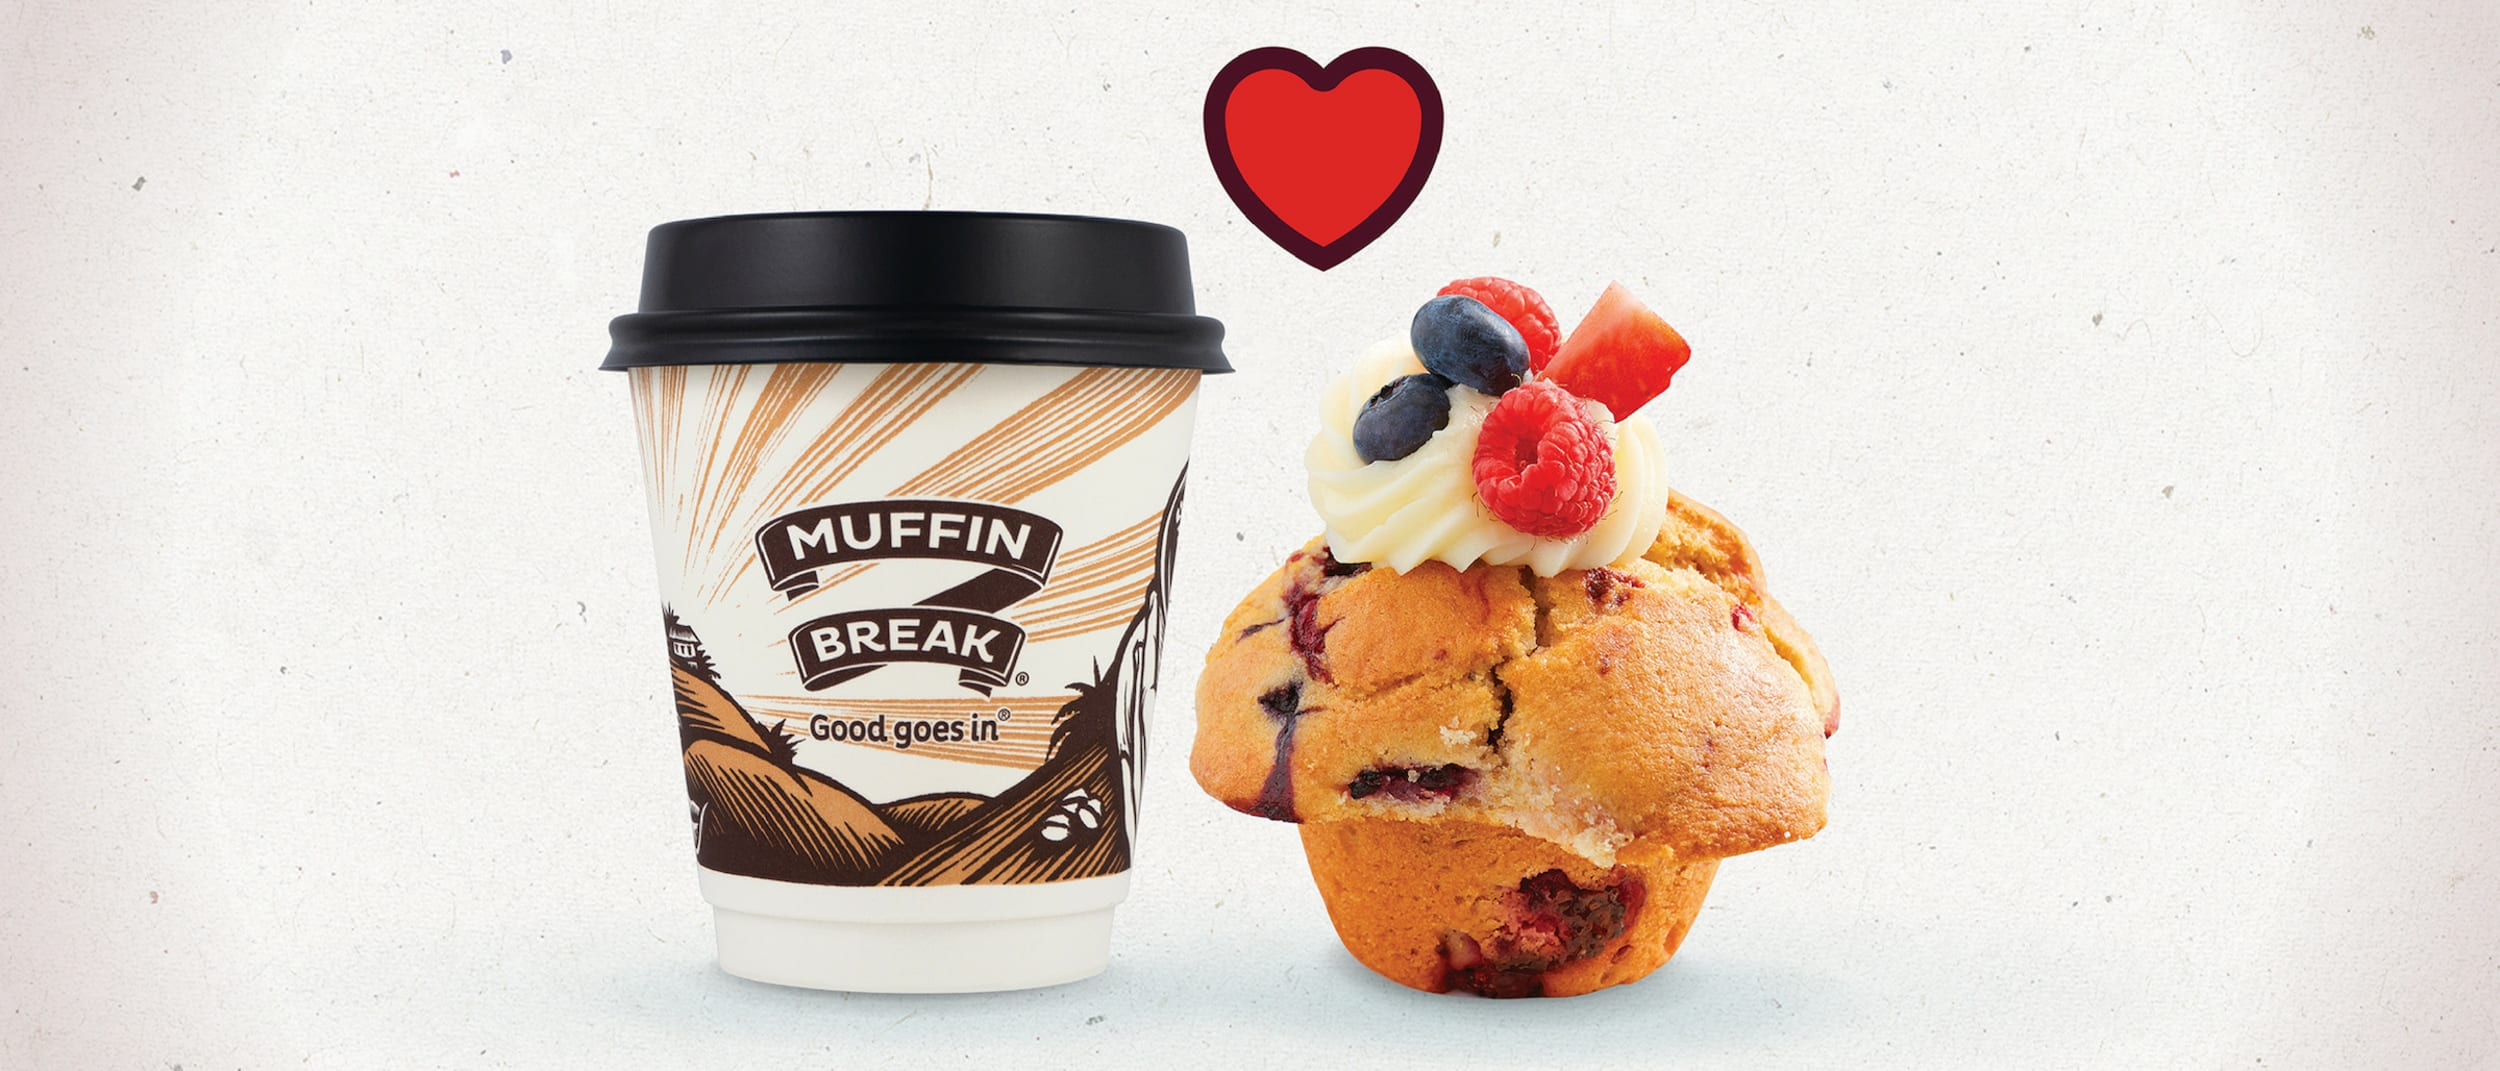 Muffin Break: muffin & coffee for $7.50